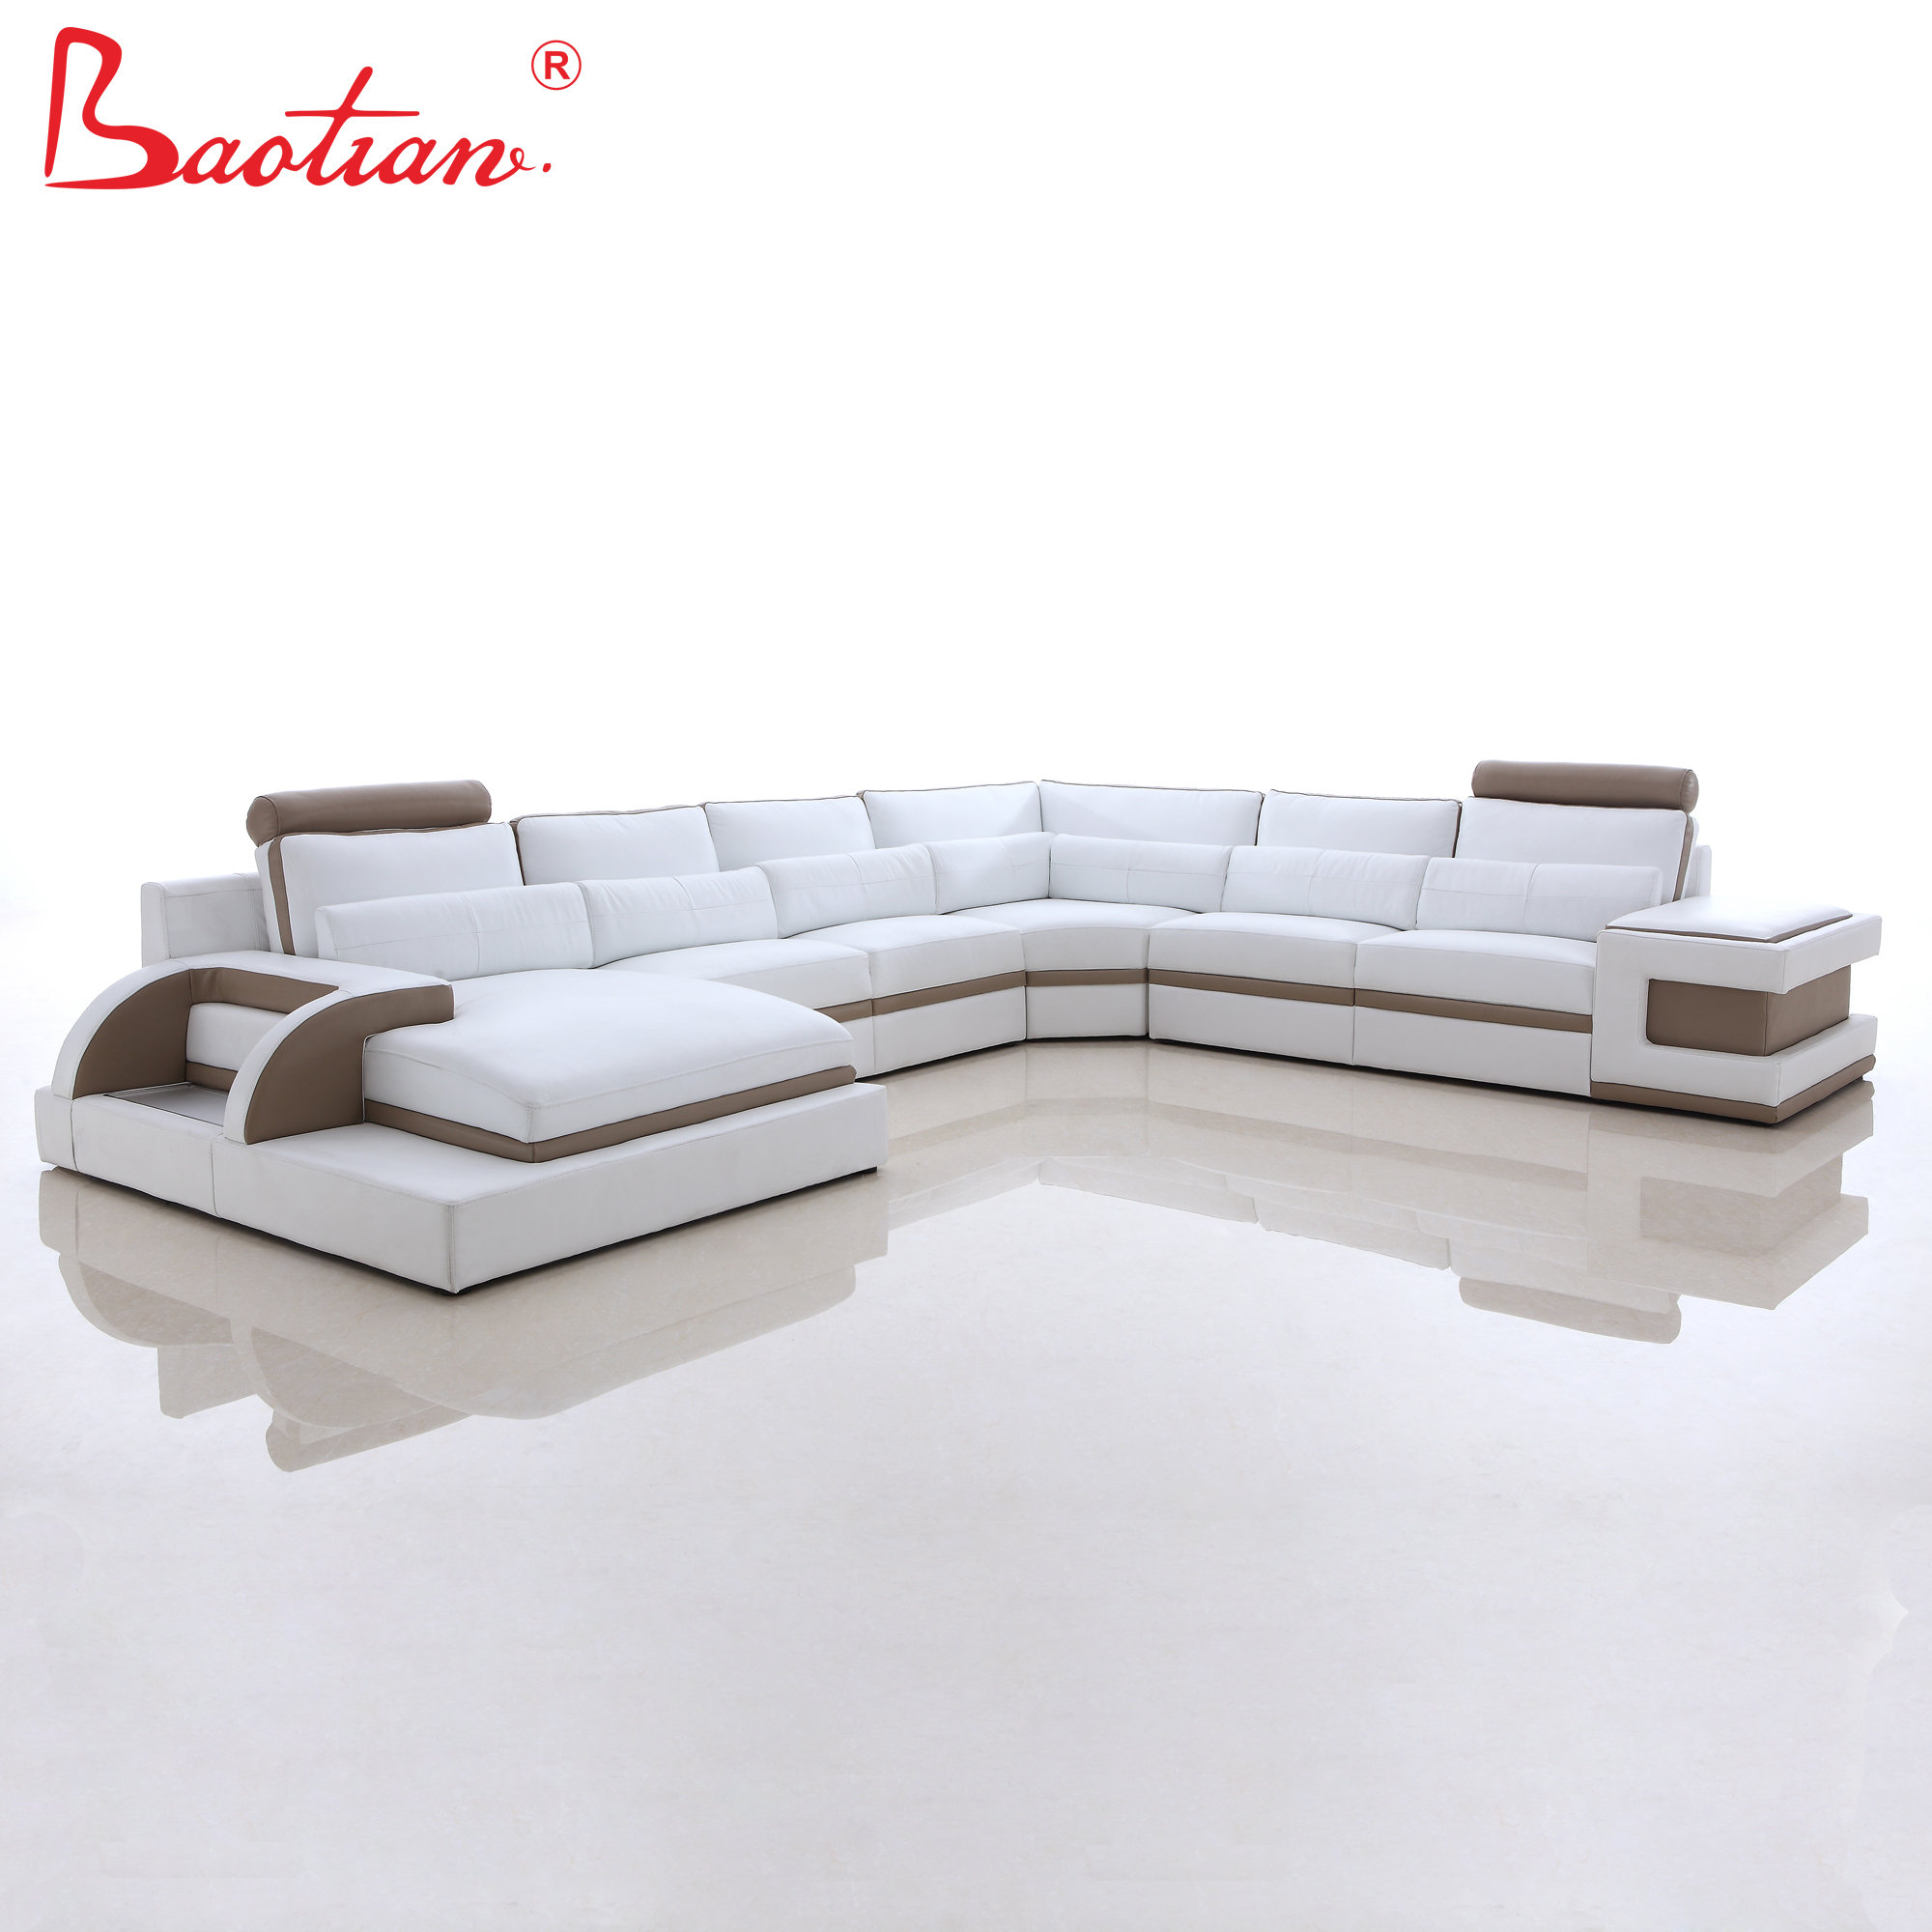 Modern Living Room Furniture Factory Big Leather Sofa Set 7 Seater Designs  Or Sectional Corner Fabric Sofas - Buy Designs Sofa,Leather Sofa Set,Fabric  ...